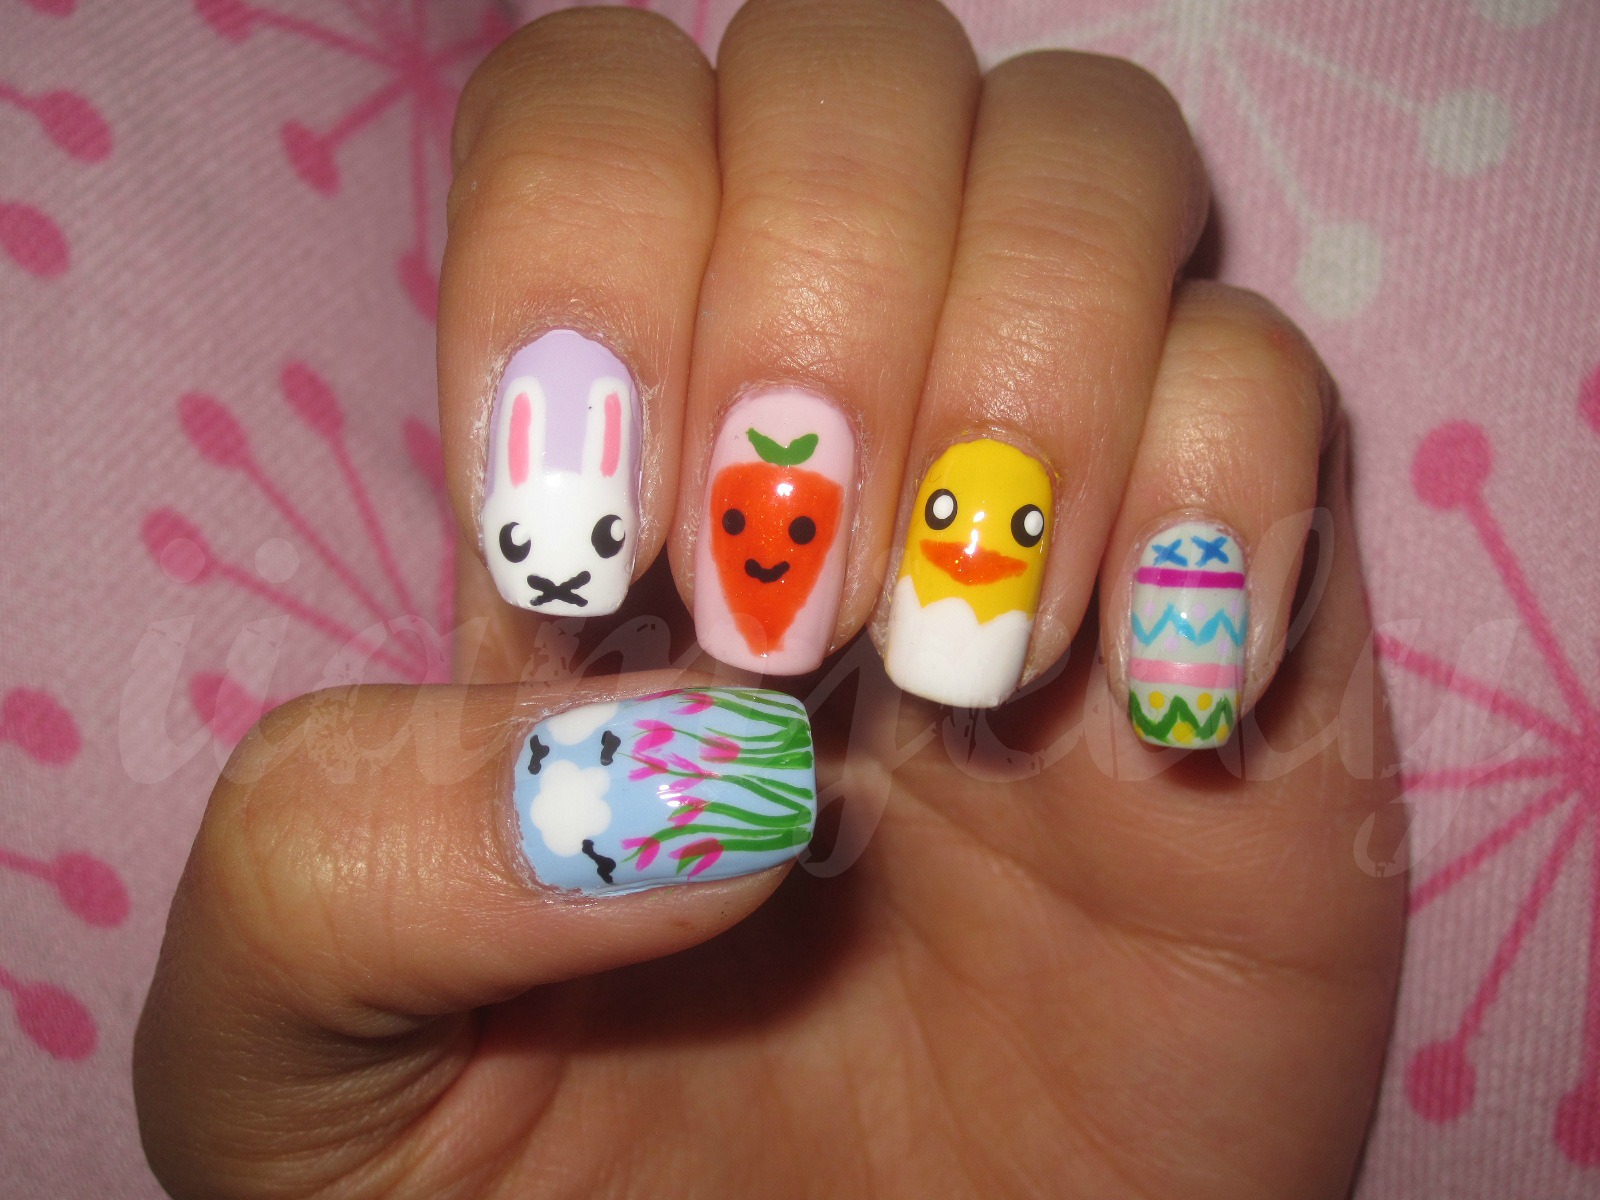 easter nail designs 22 30 Awesome Easter Nail Designs 2015 30 Awesome Easter Nail Designs 2015 easter nail designs 22